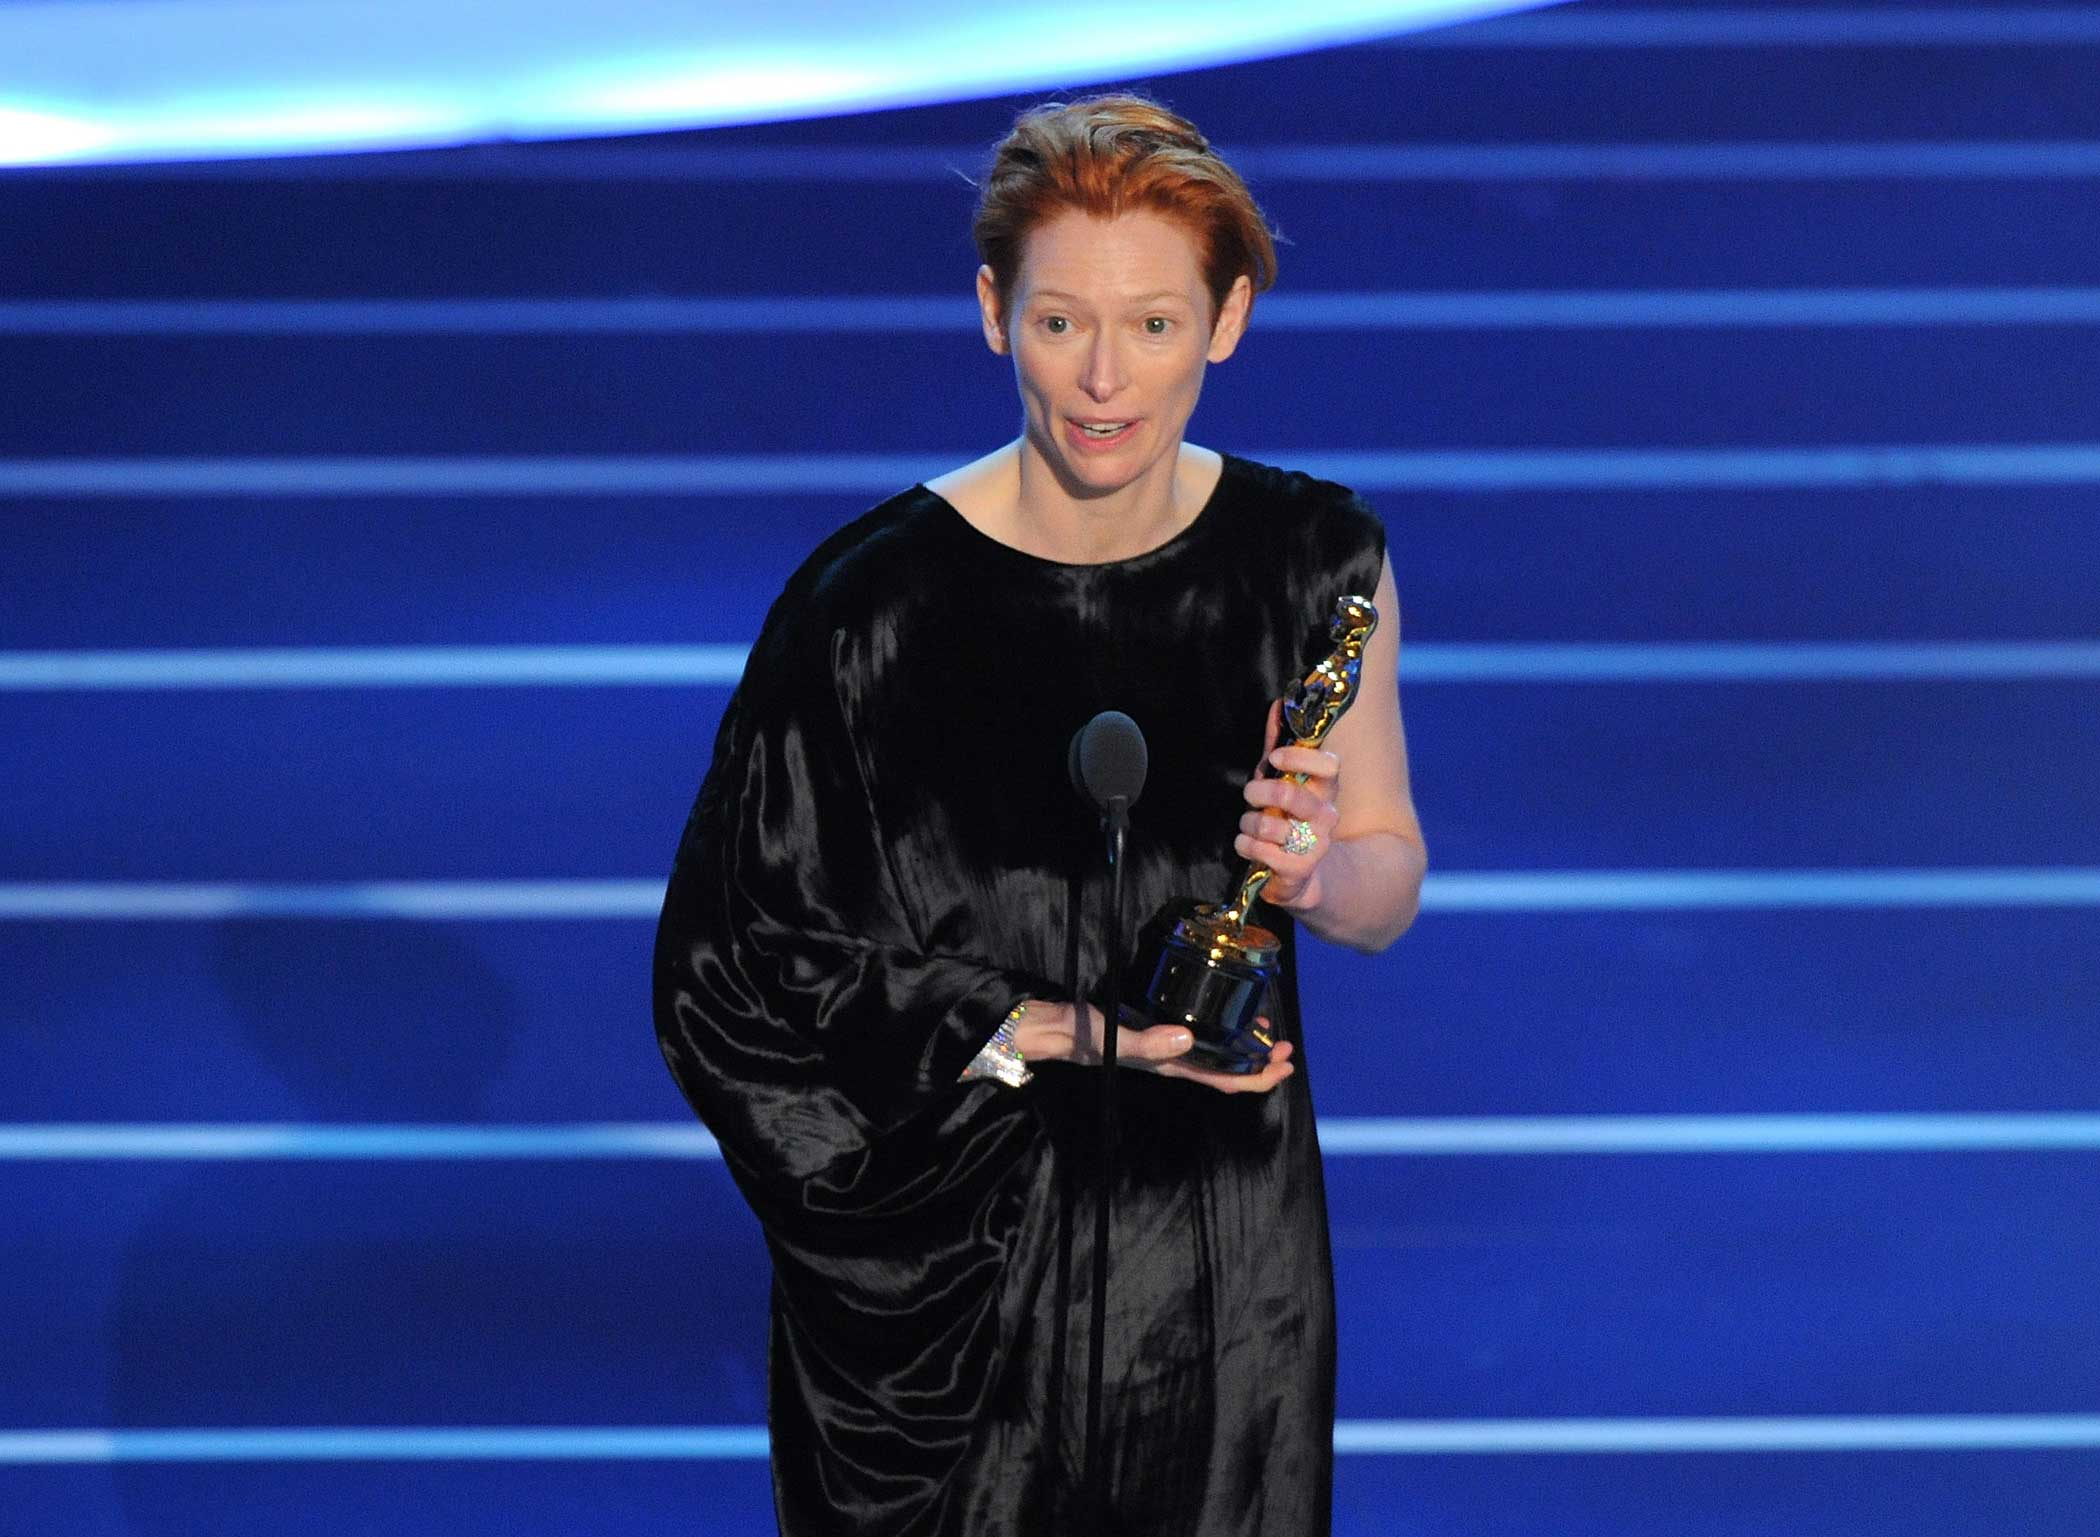 Tilda Swinton onstage during the 80th Annual Academy Awards on Feb. 24, 2008 in Los Angeles.